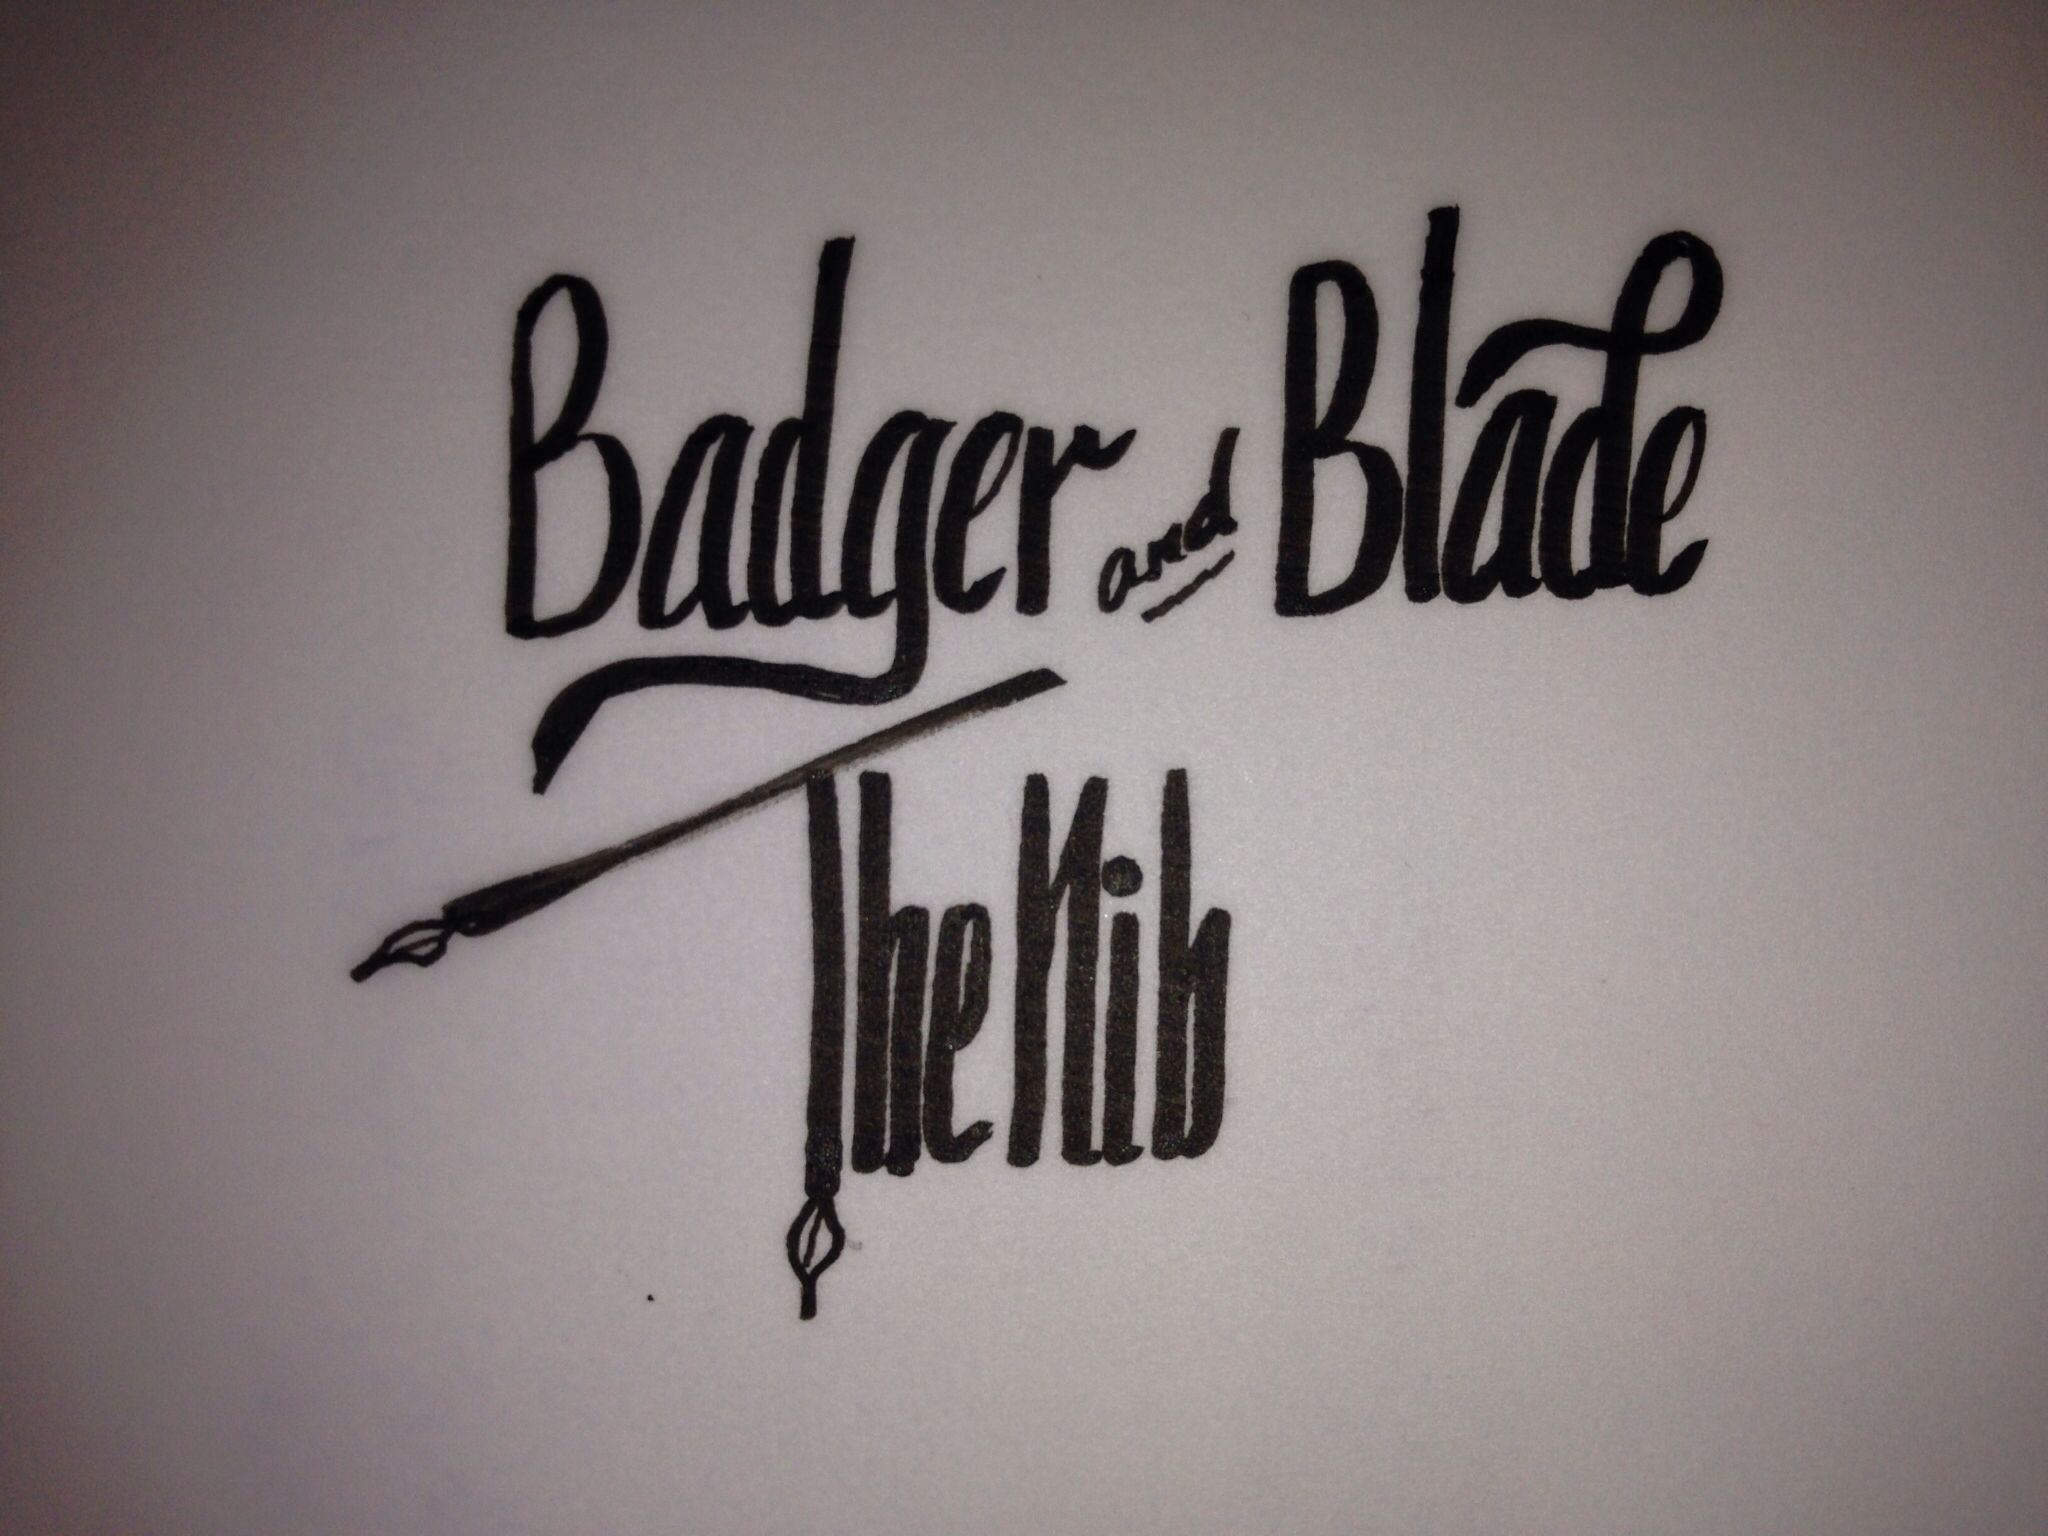 Badger and Blade Nib forum logo that I created with a brush pen  I